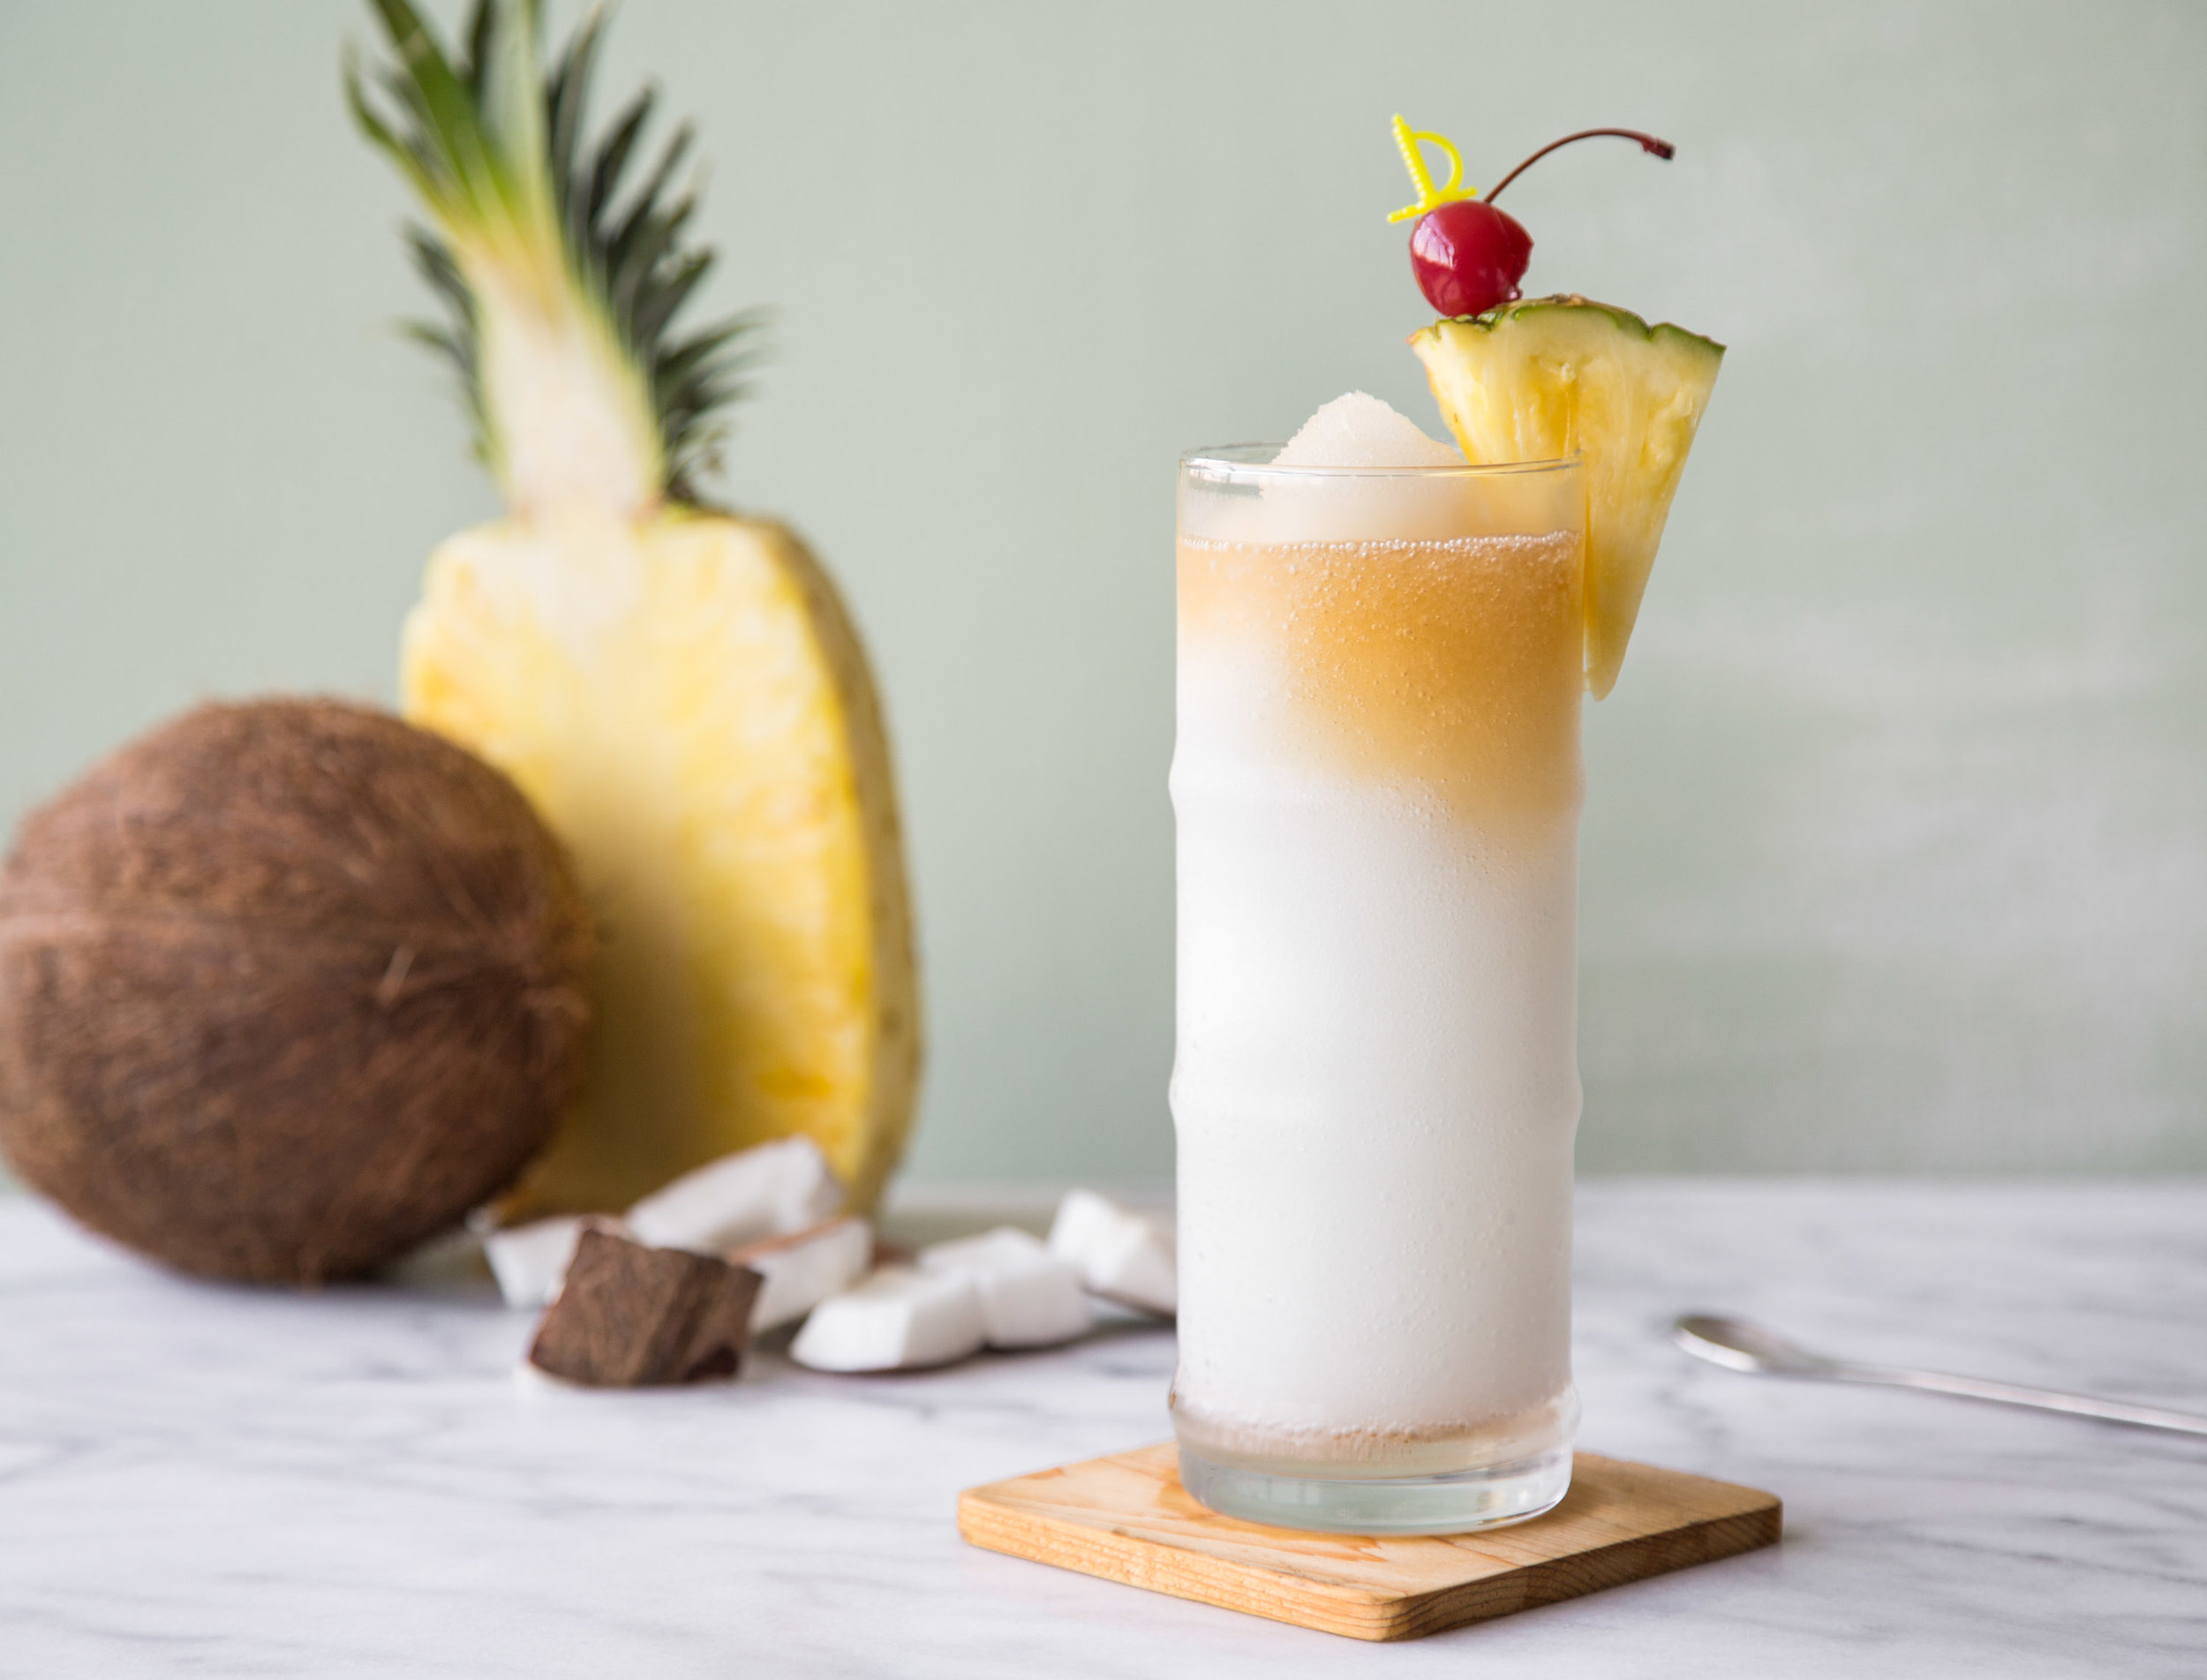 Pina Colada recipe in a glass with fresh pineapple.